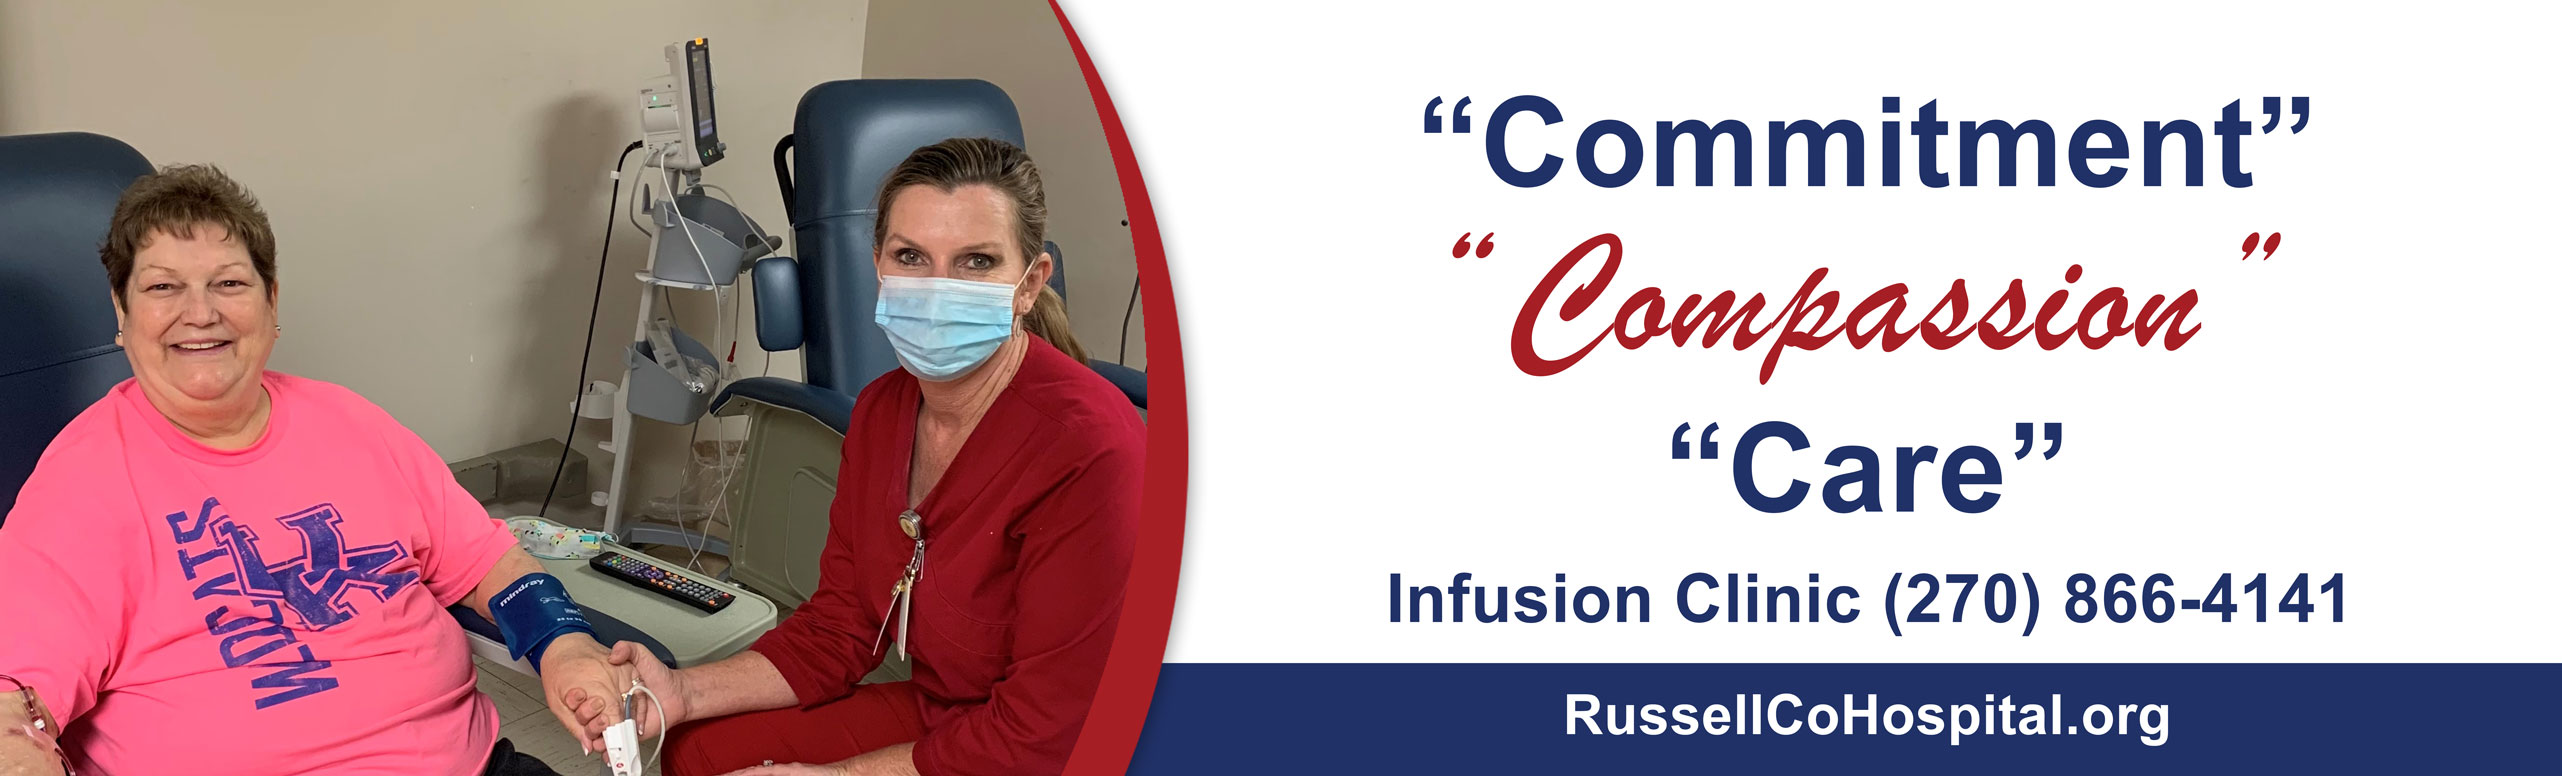 Pictured is one of our patients at the infusion Clinic.